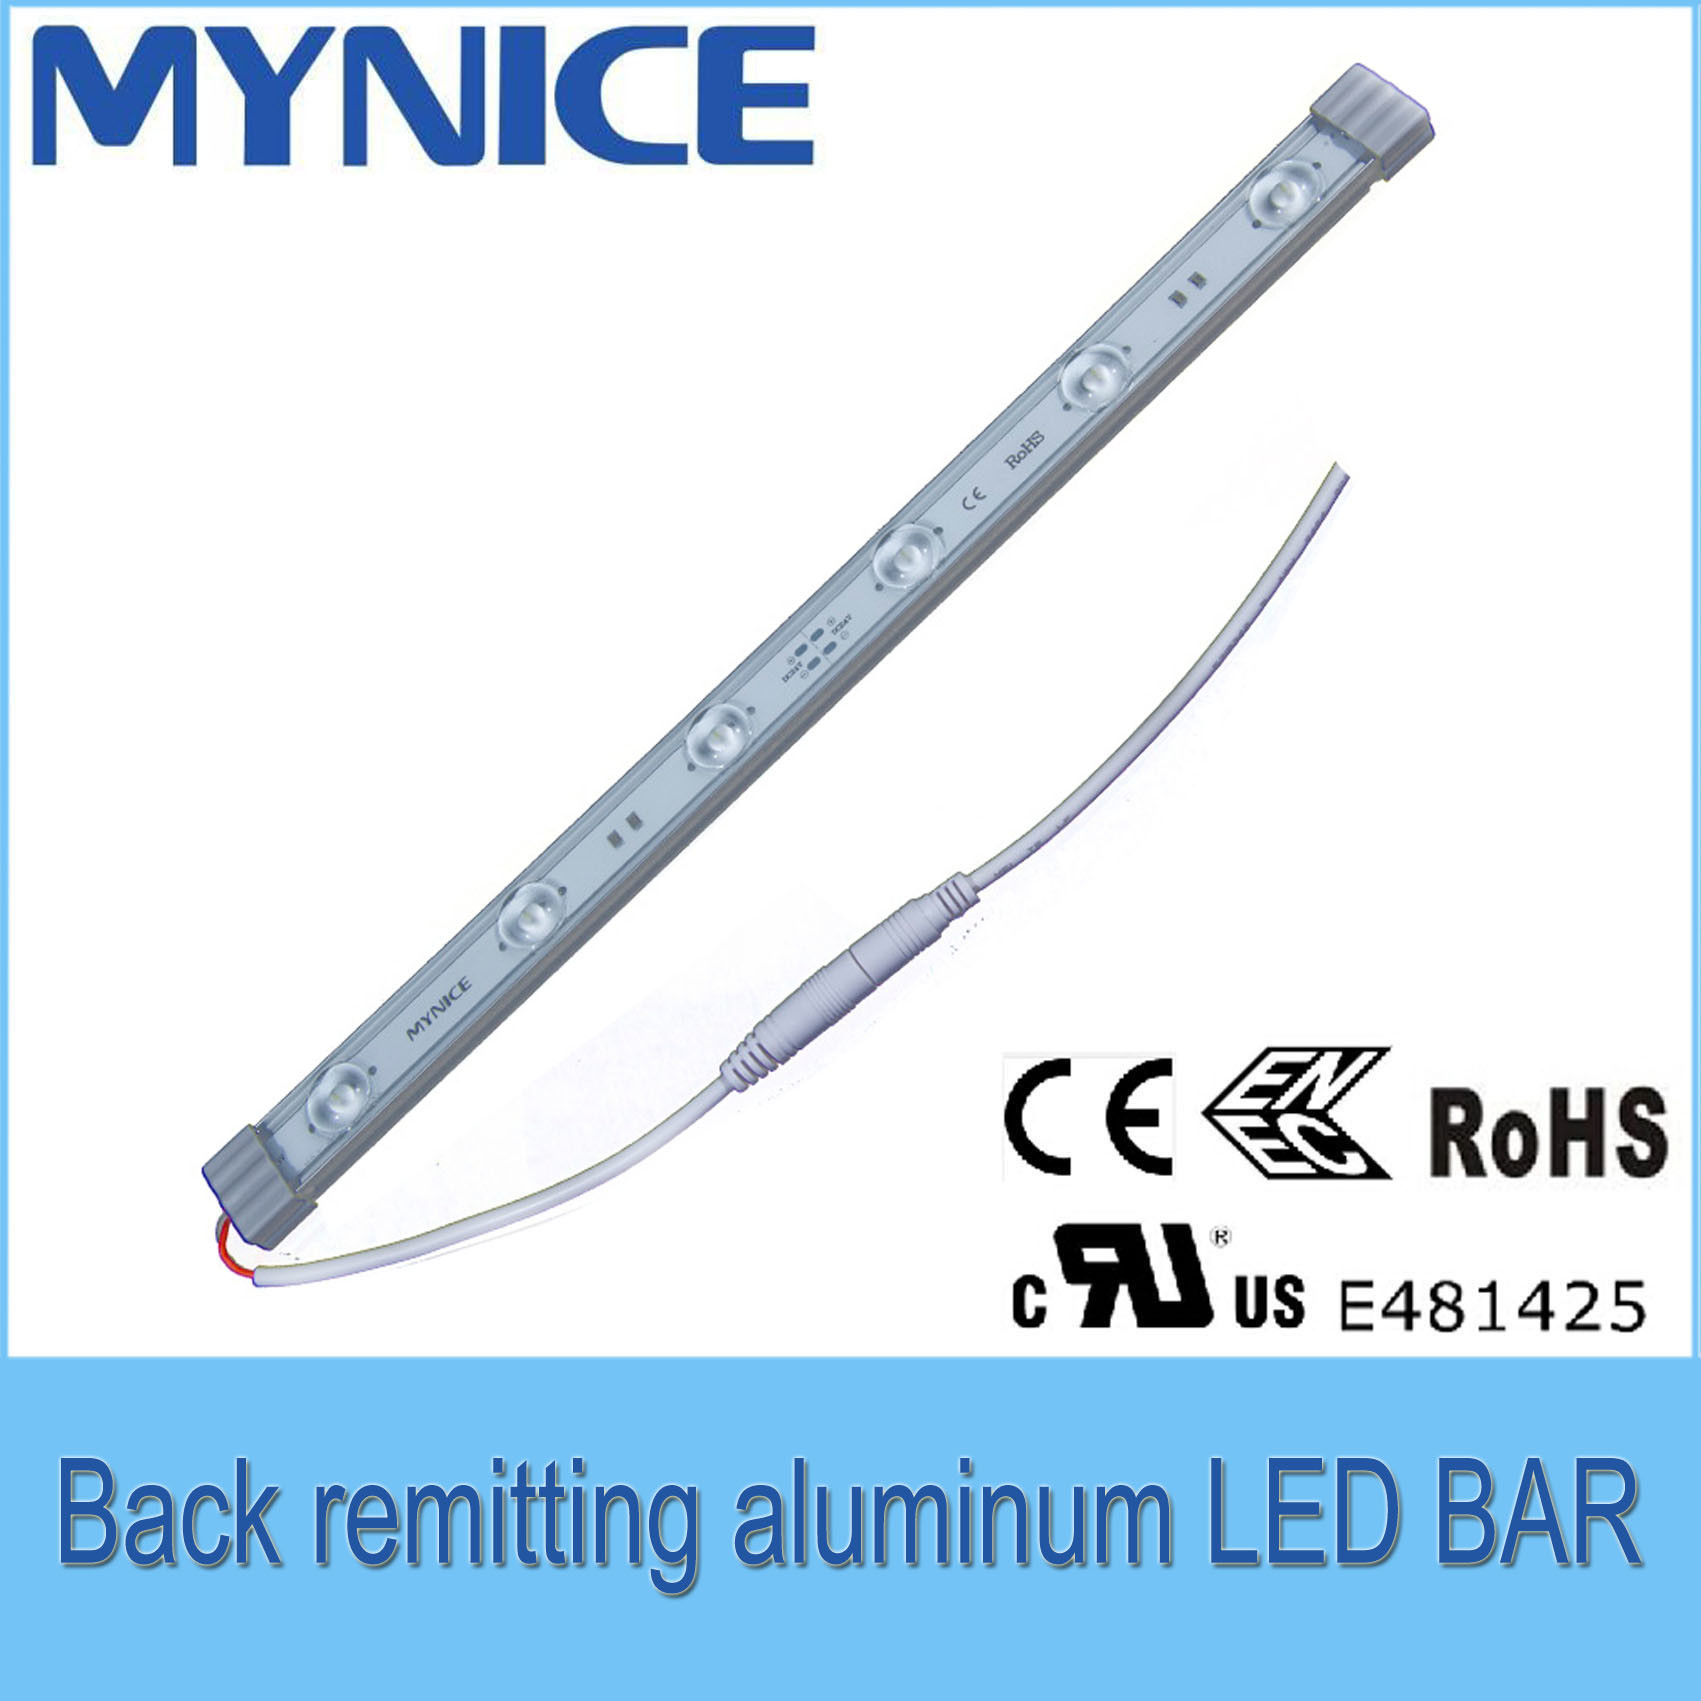 Osram 3030 DC24V High Brightness LED Rigid Bar with Ce RoHS UL Certificates 3 Years Warrenty